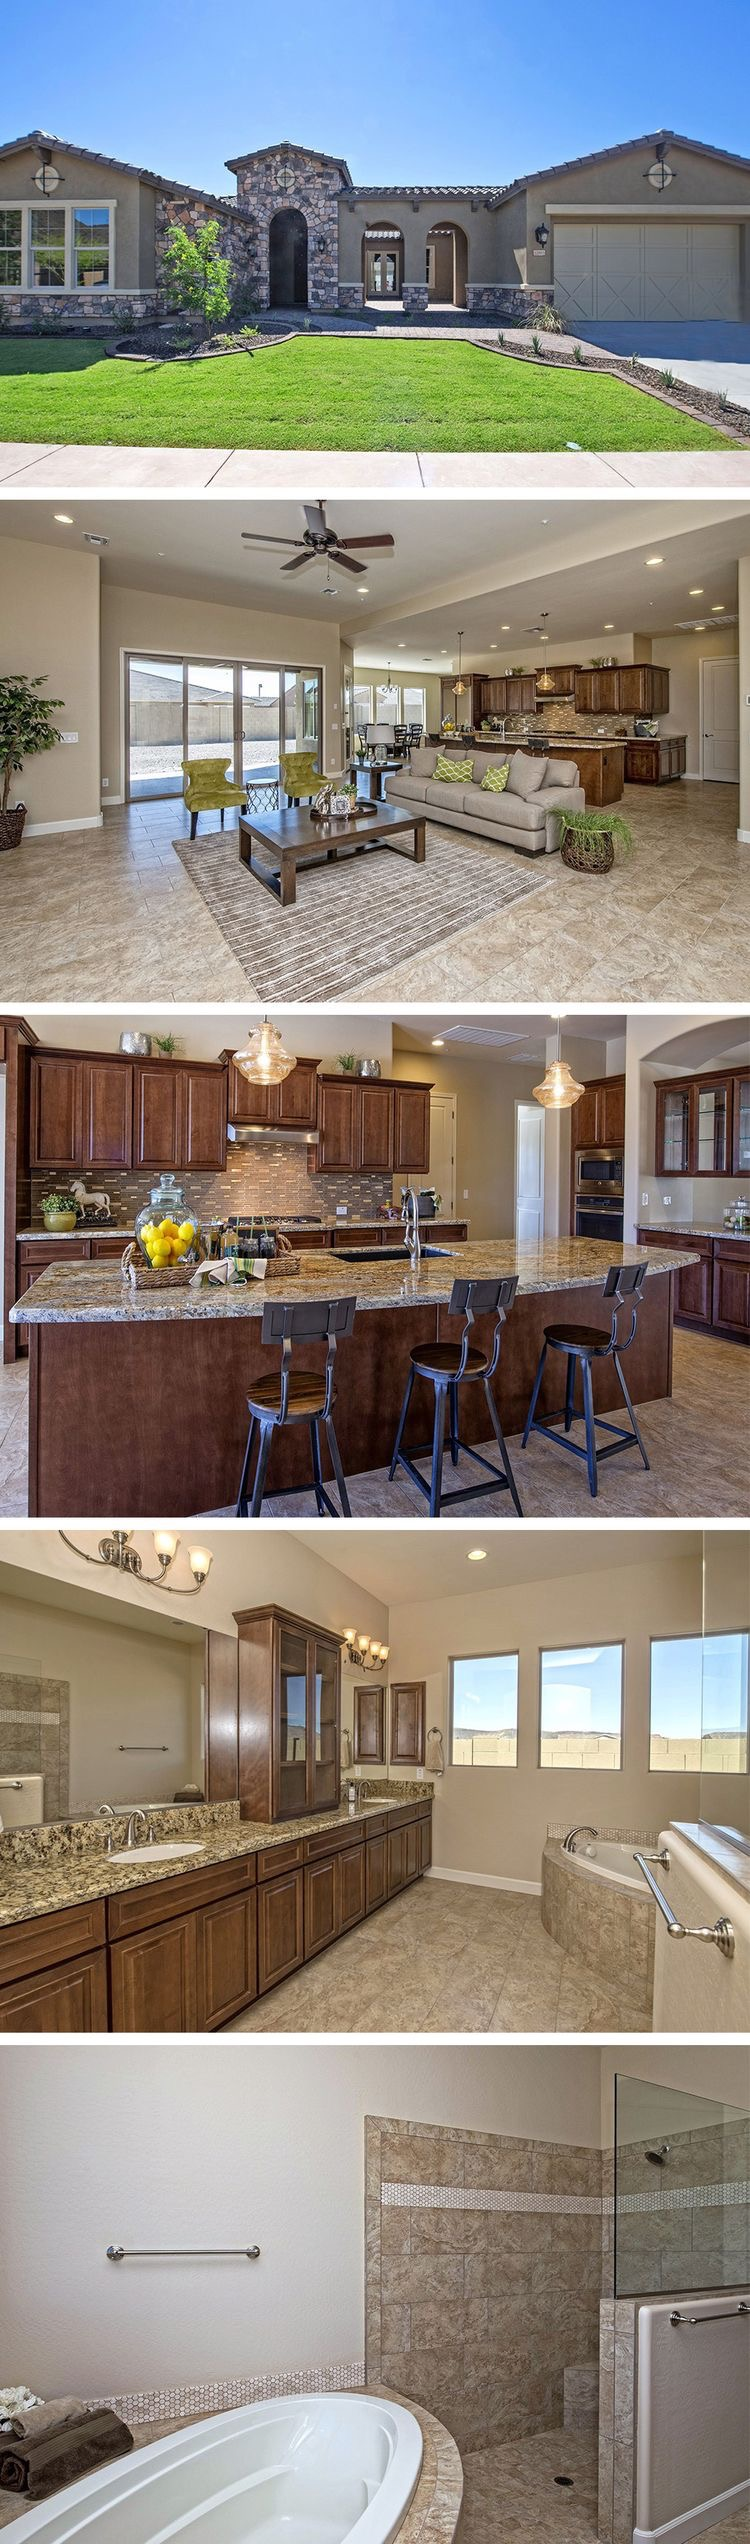 Luxury, single-story southwestern style home in Goodyear, AZ ...